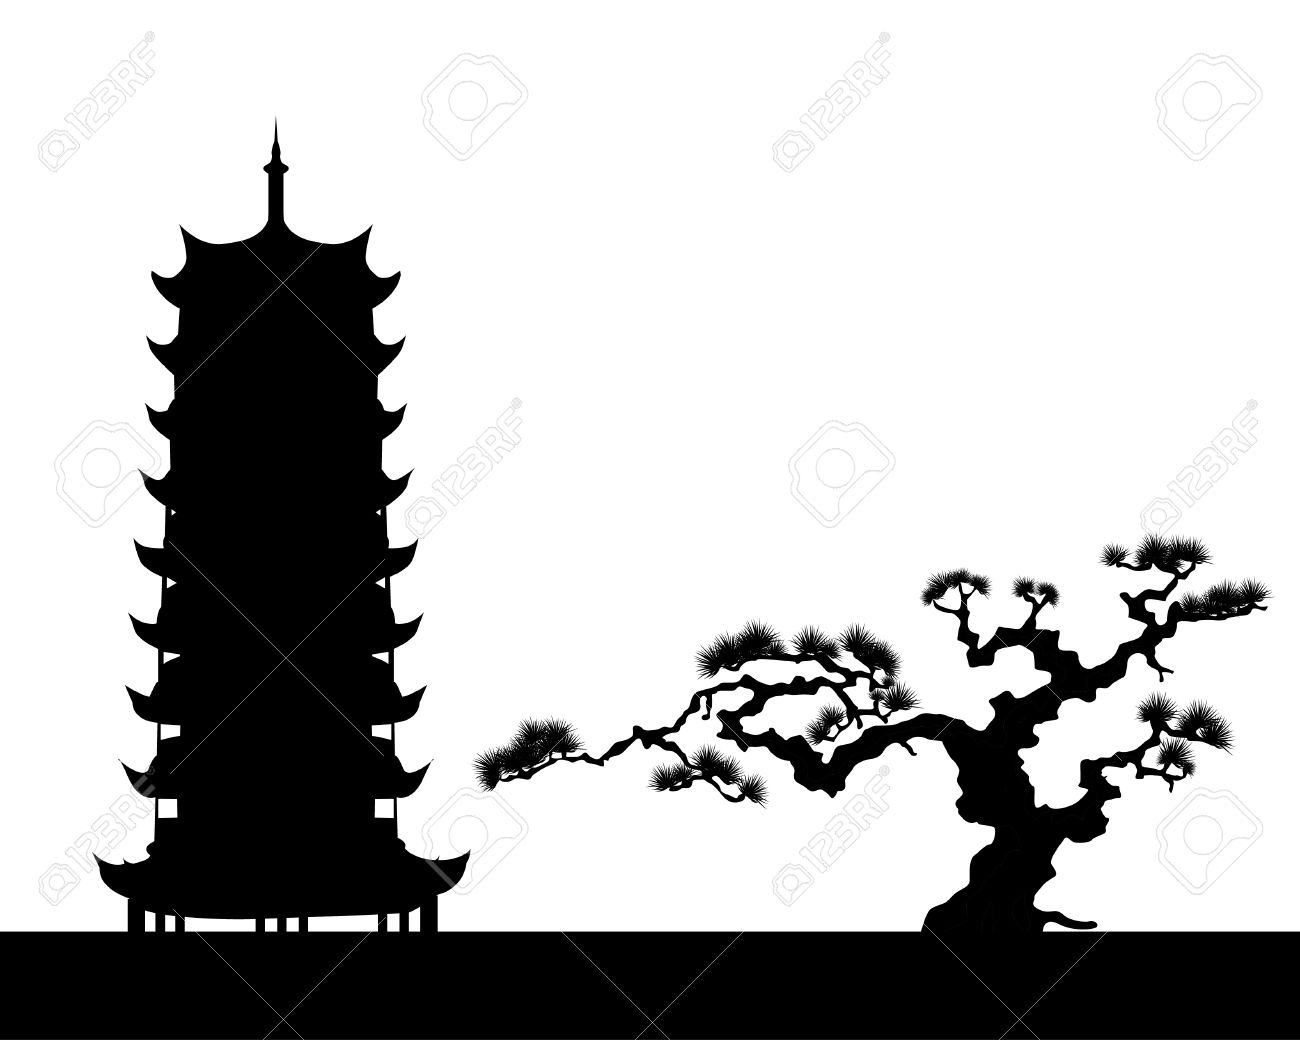 the Japanese landscape silhouette Stock Vector - 10476003